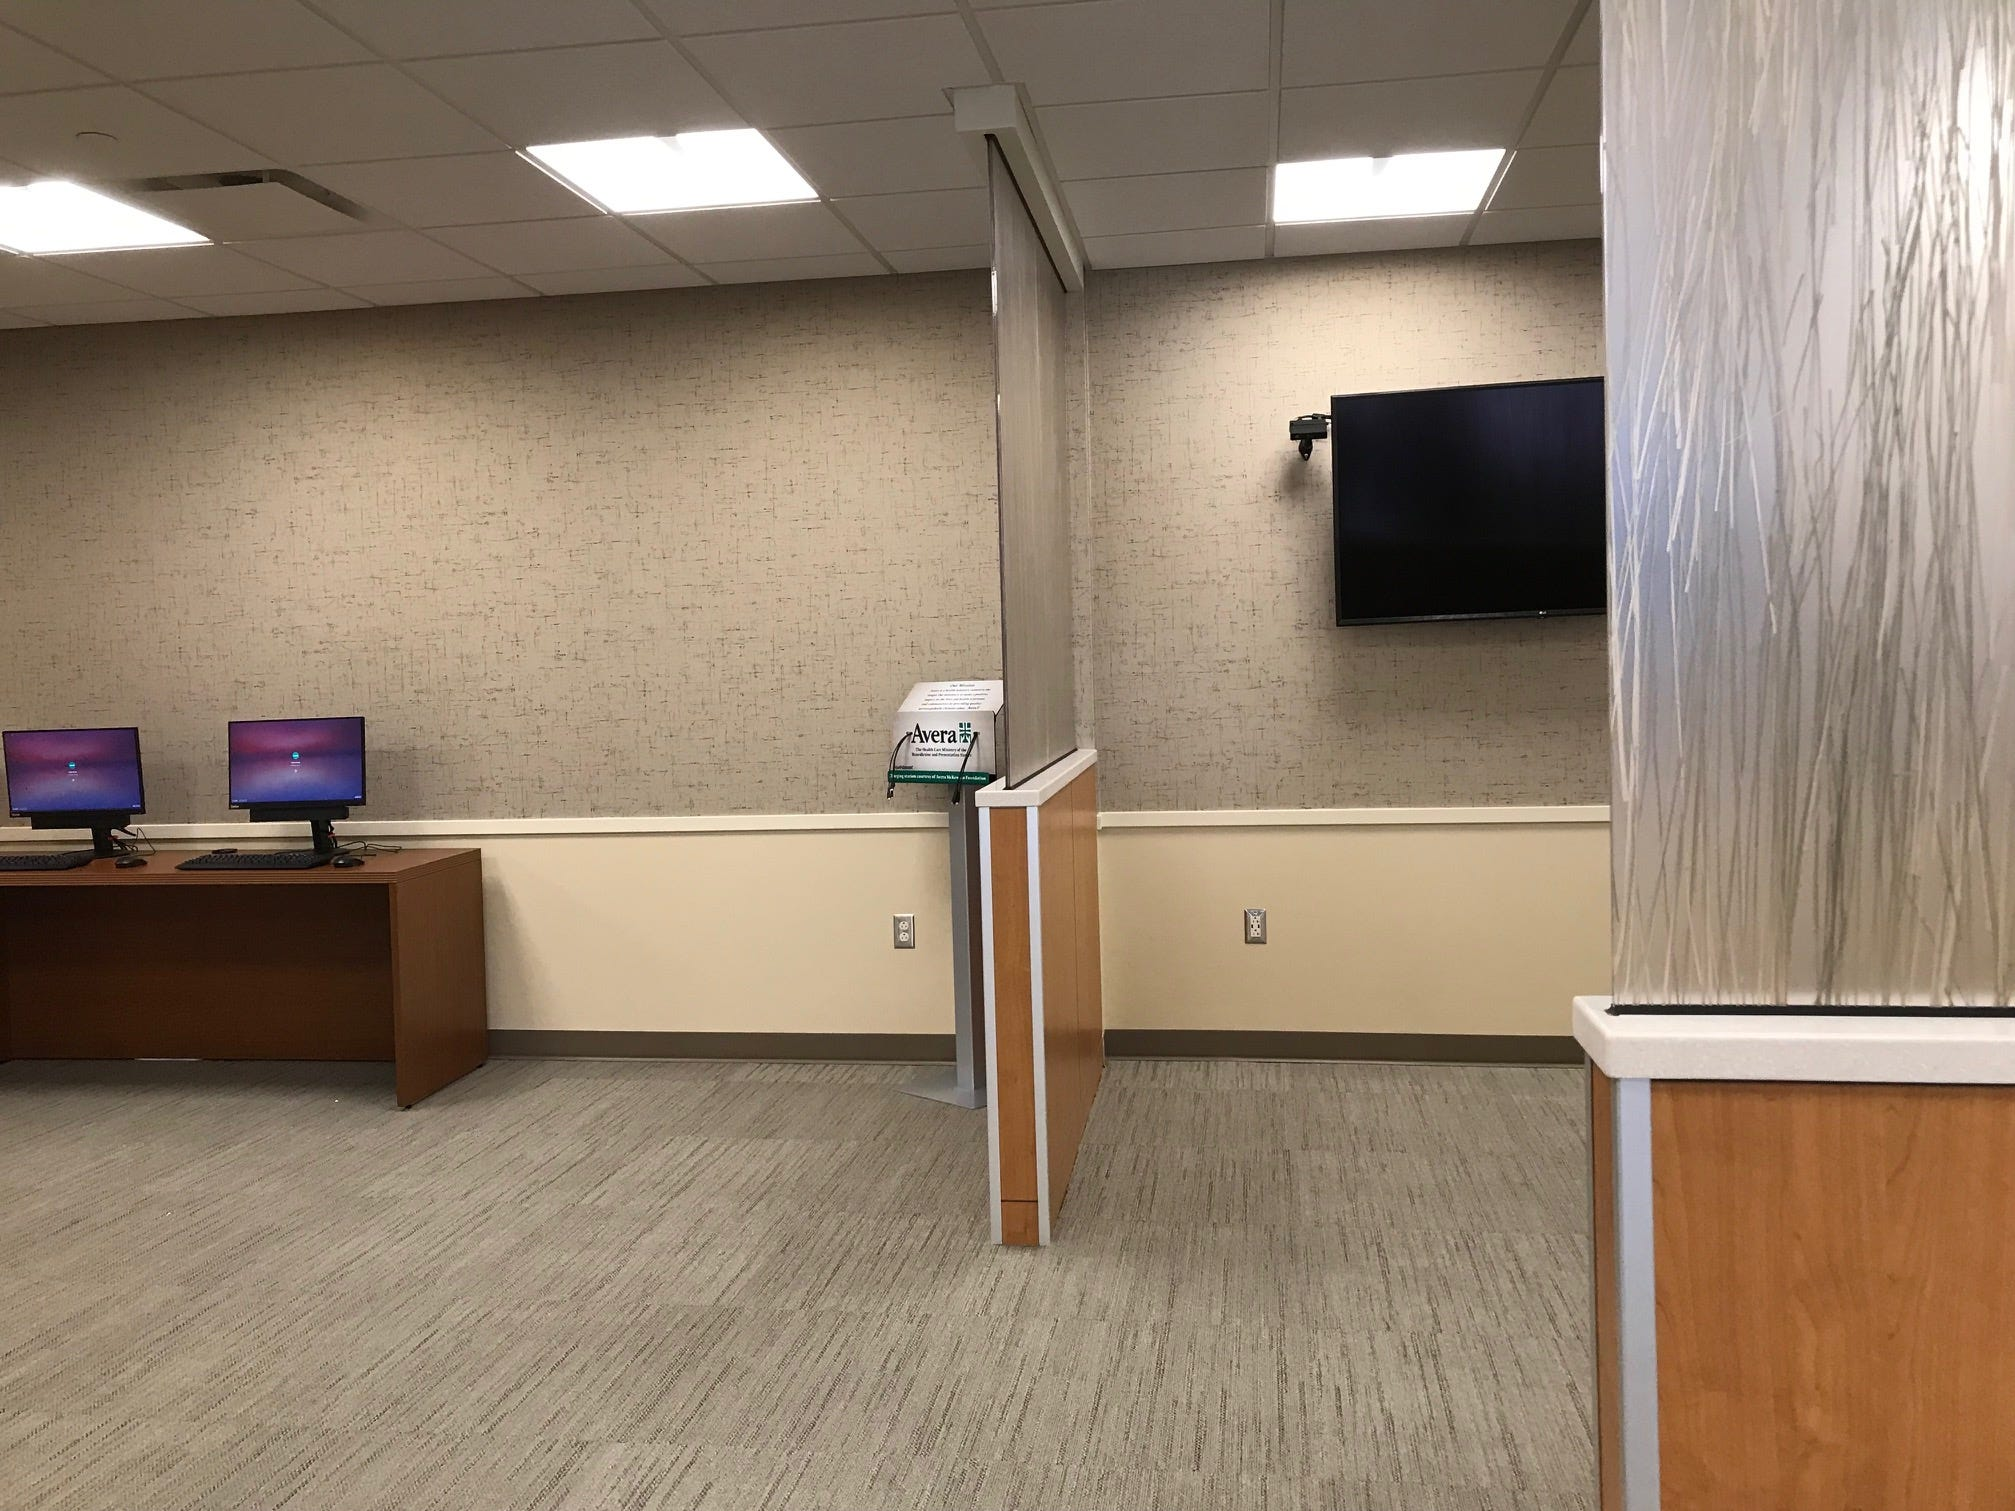 The waiting room in the new Intensive Care Unit at Avera McKennan Hospital & University Health Center will include seating, vending, computers and cellphone charging ports and plugins.